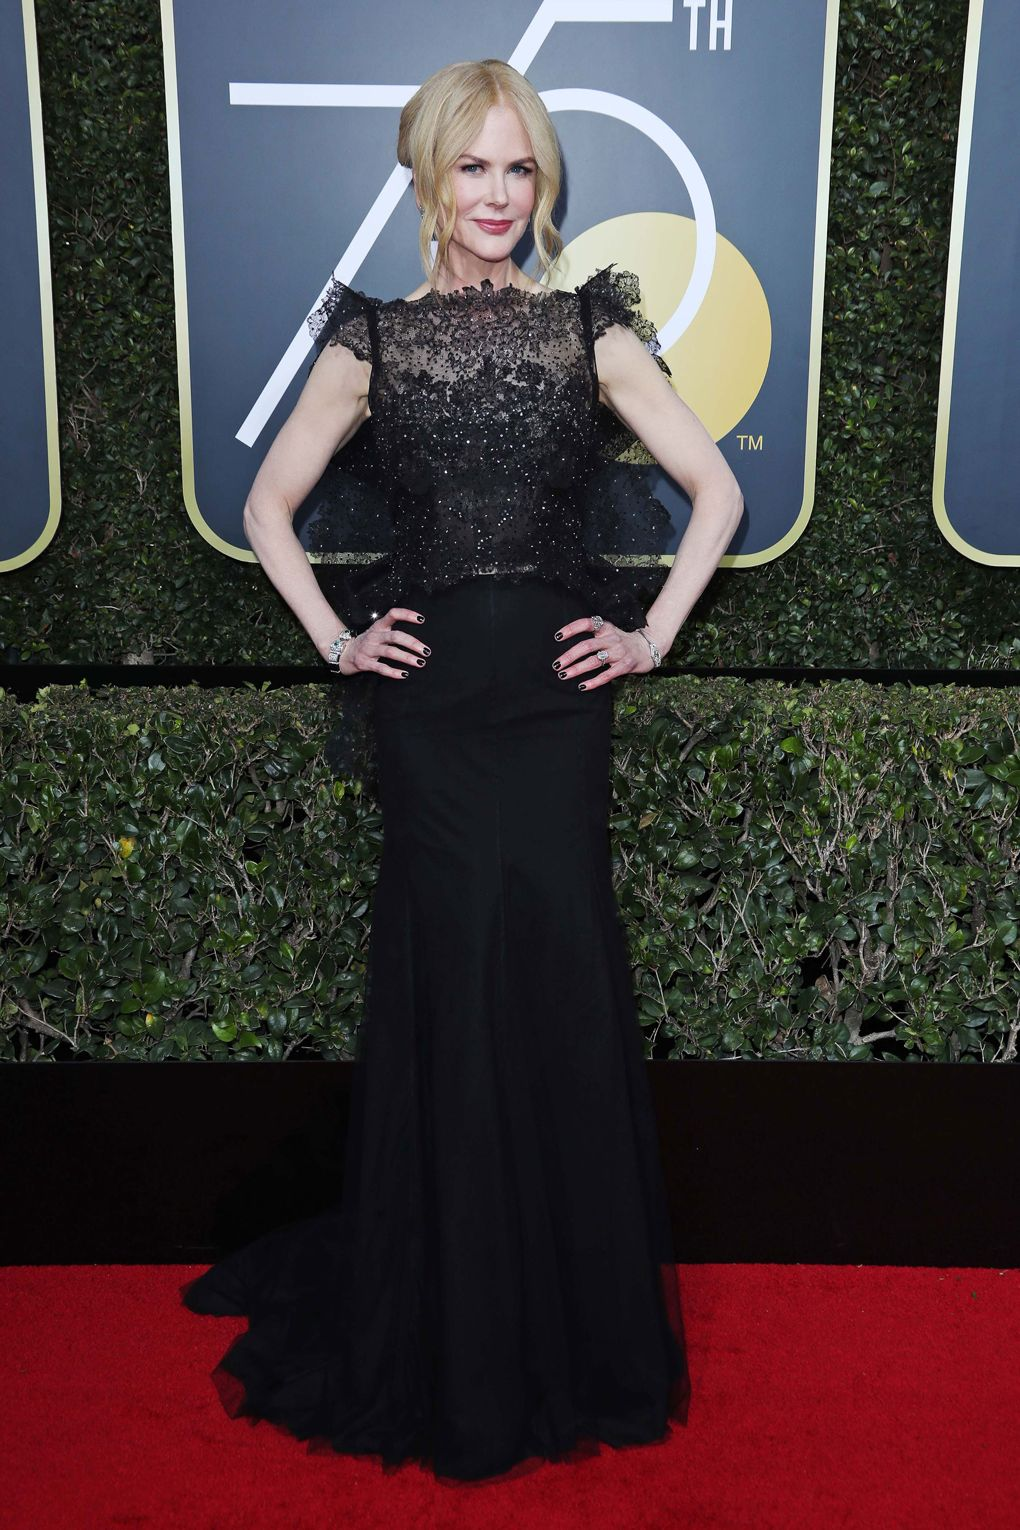 Red carpet 2018 - Nicole Kidman in Givenchy - Photo credit Rex/Shutterstock - black dresses at golden globes 2018 - times up - women empowerment